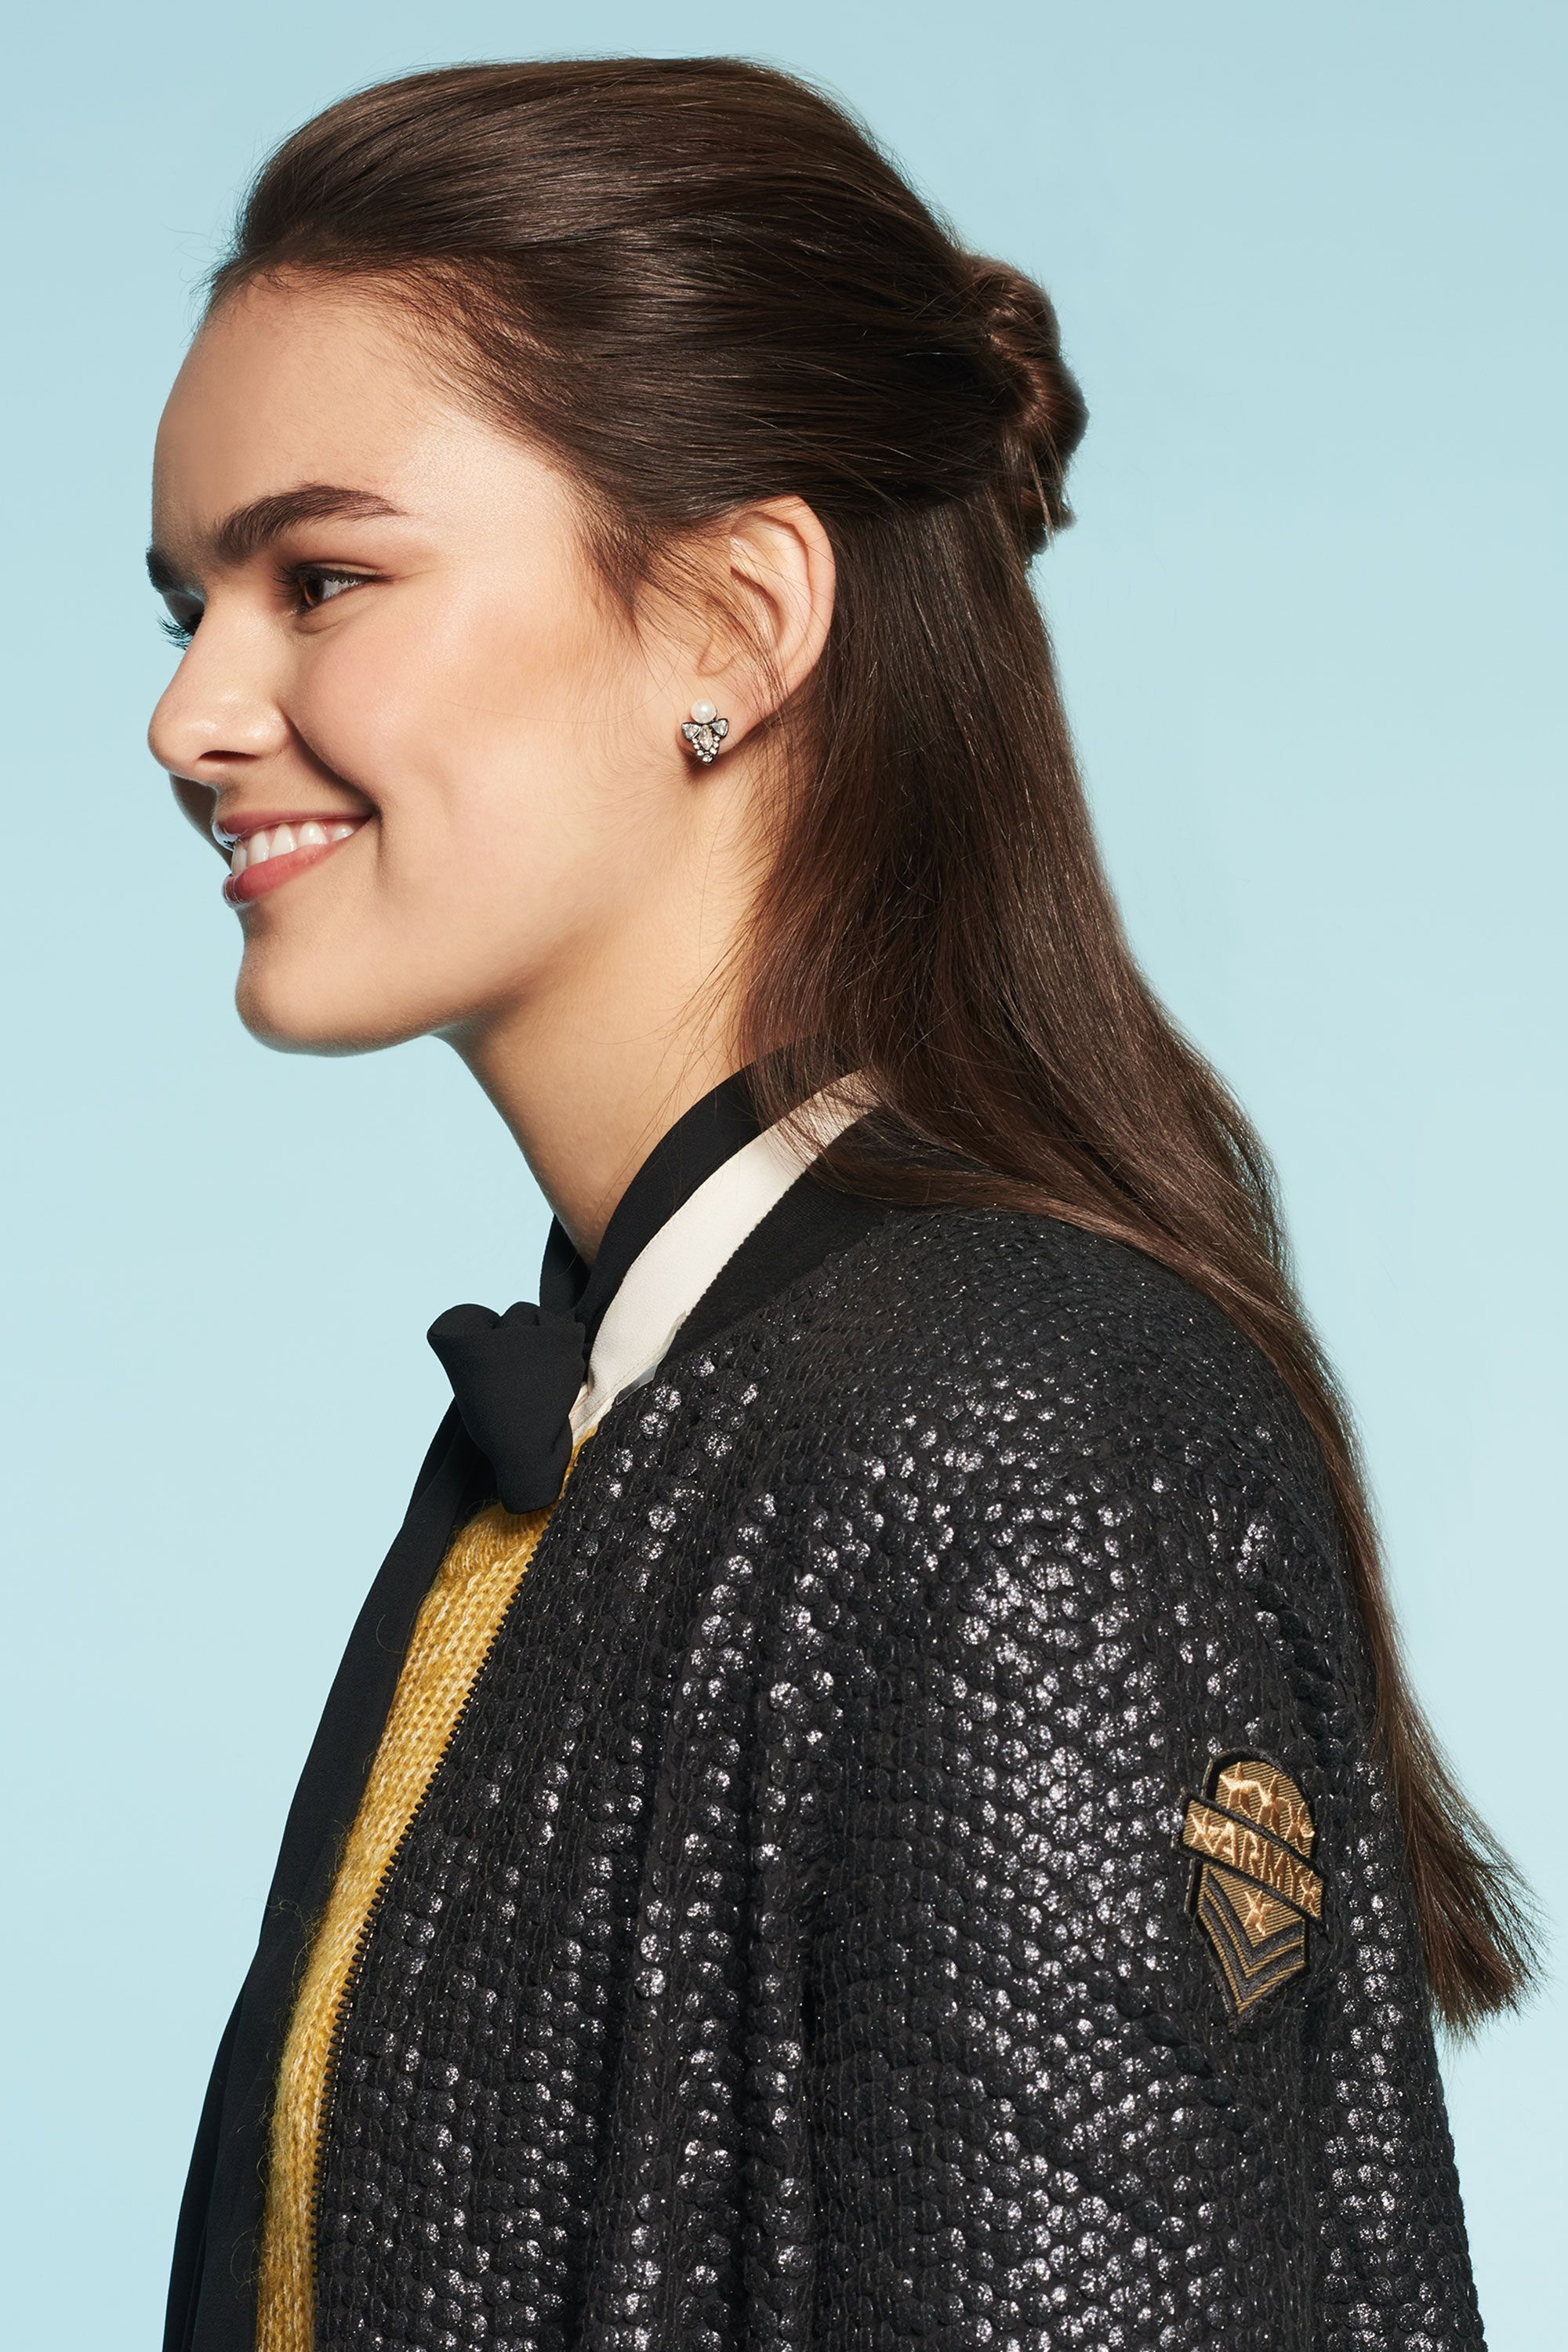 <p>Trying to make your look&nbsp&#x3B;last half a week before you break out a sweat in&nbsp&#x3B;gym?&nbsp&#x3B;Instead of overloading on dry shampoo, use greasy roots to your best advantage by creating a super-cute, super-easy&nbsp&#x3B;half-up bun.</p>